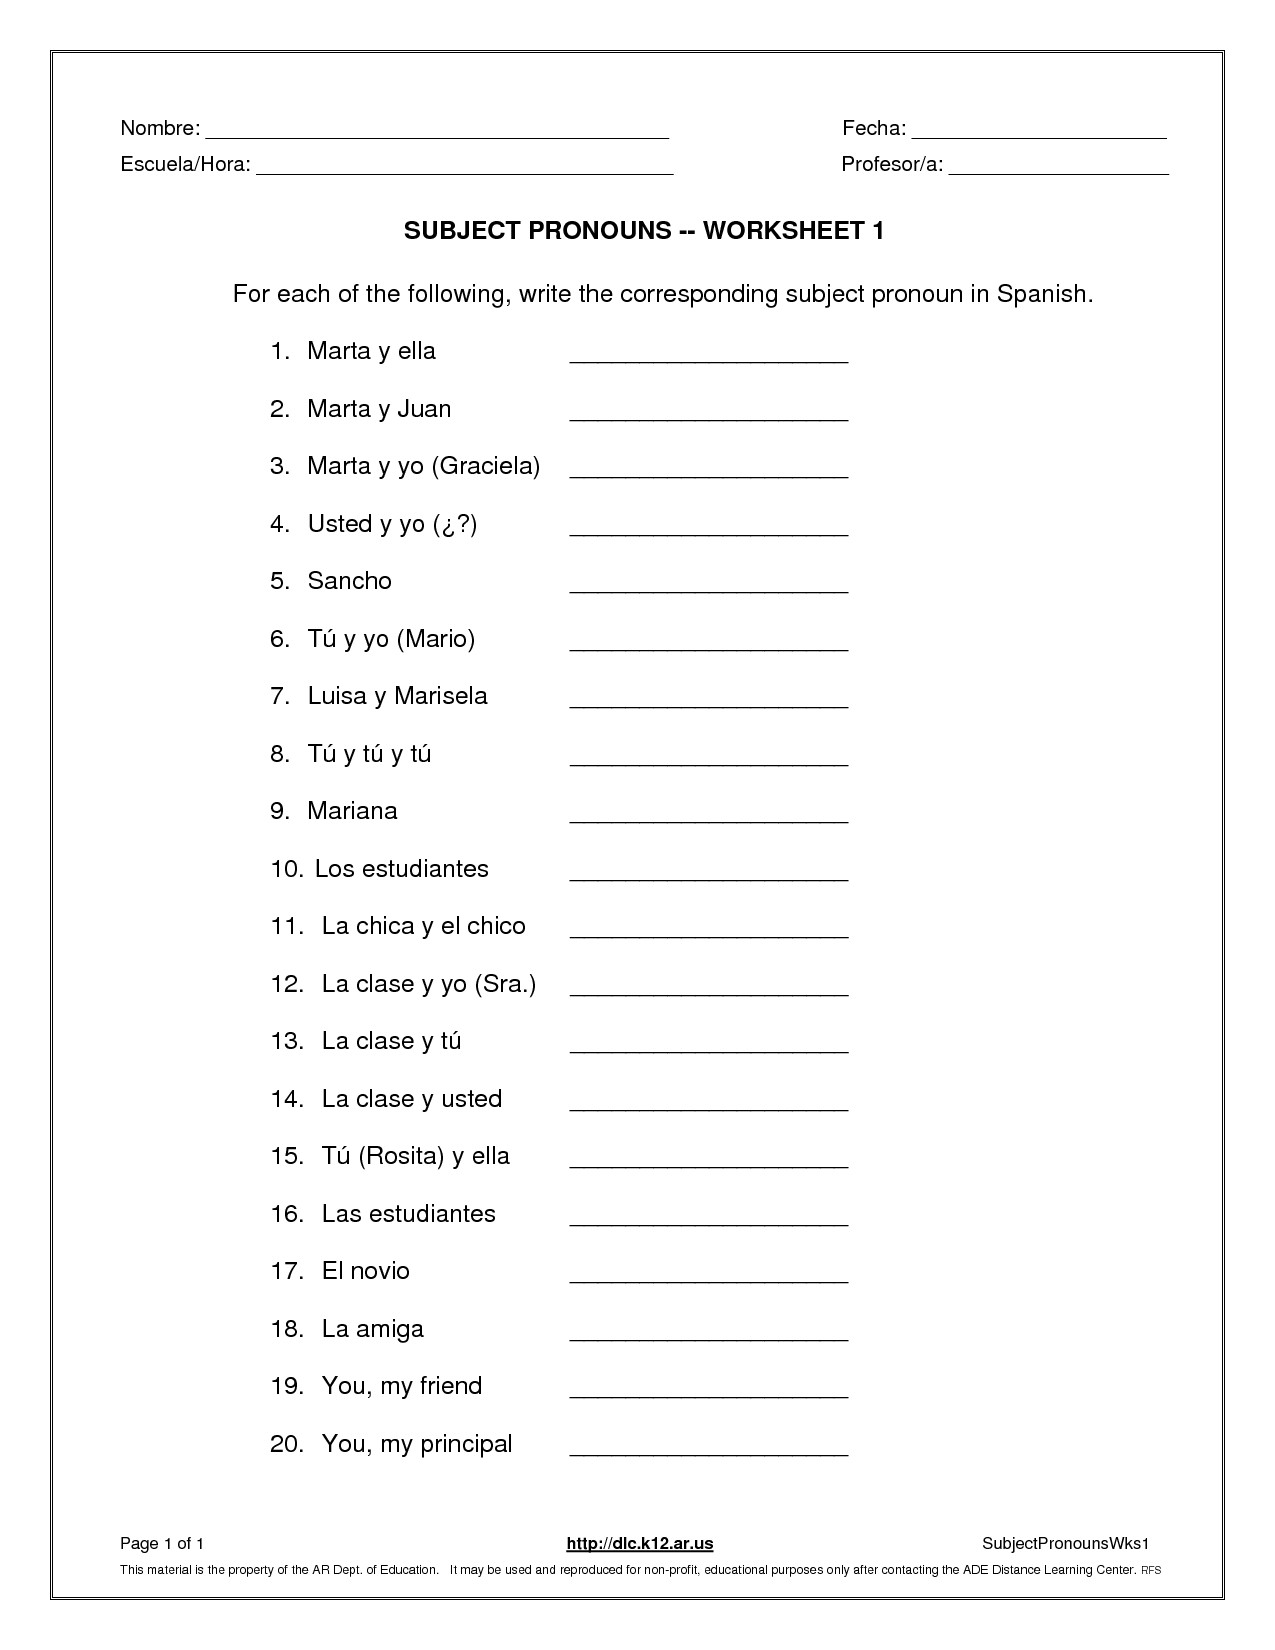 Worksheets Beginning Spanish Worksheets la escuela de ingles eva subject pronouns worksheet cosas para spanish lessons worksheet